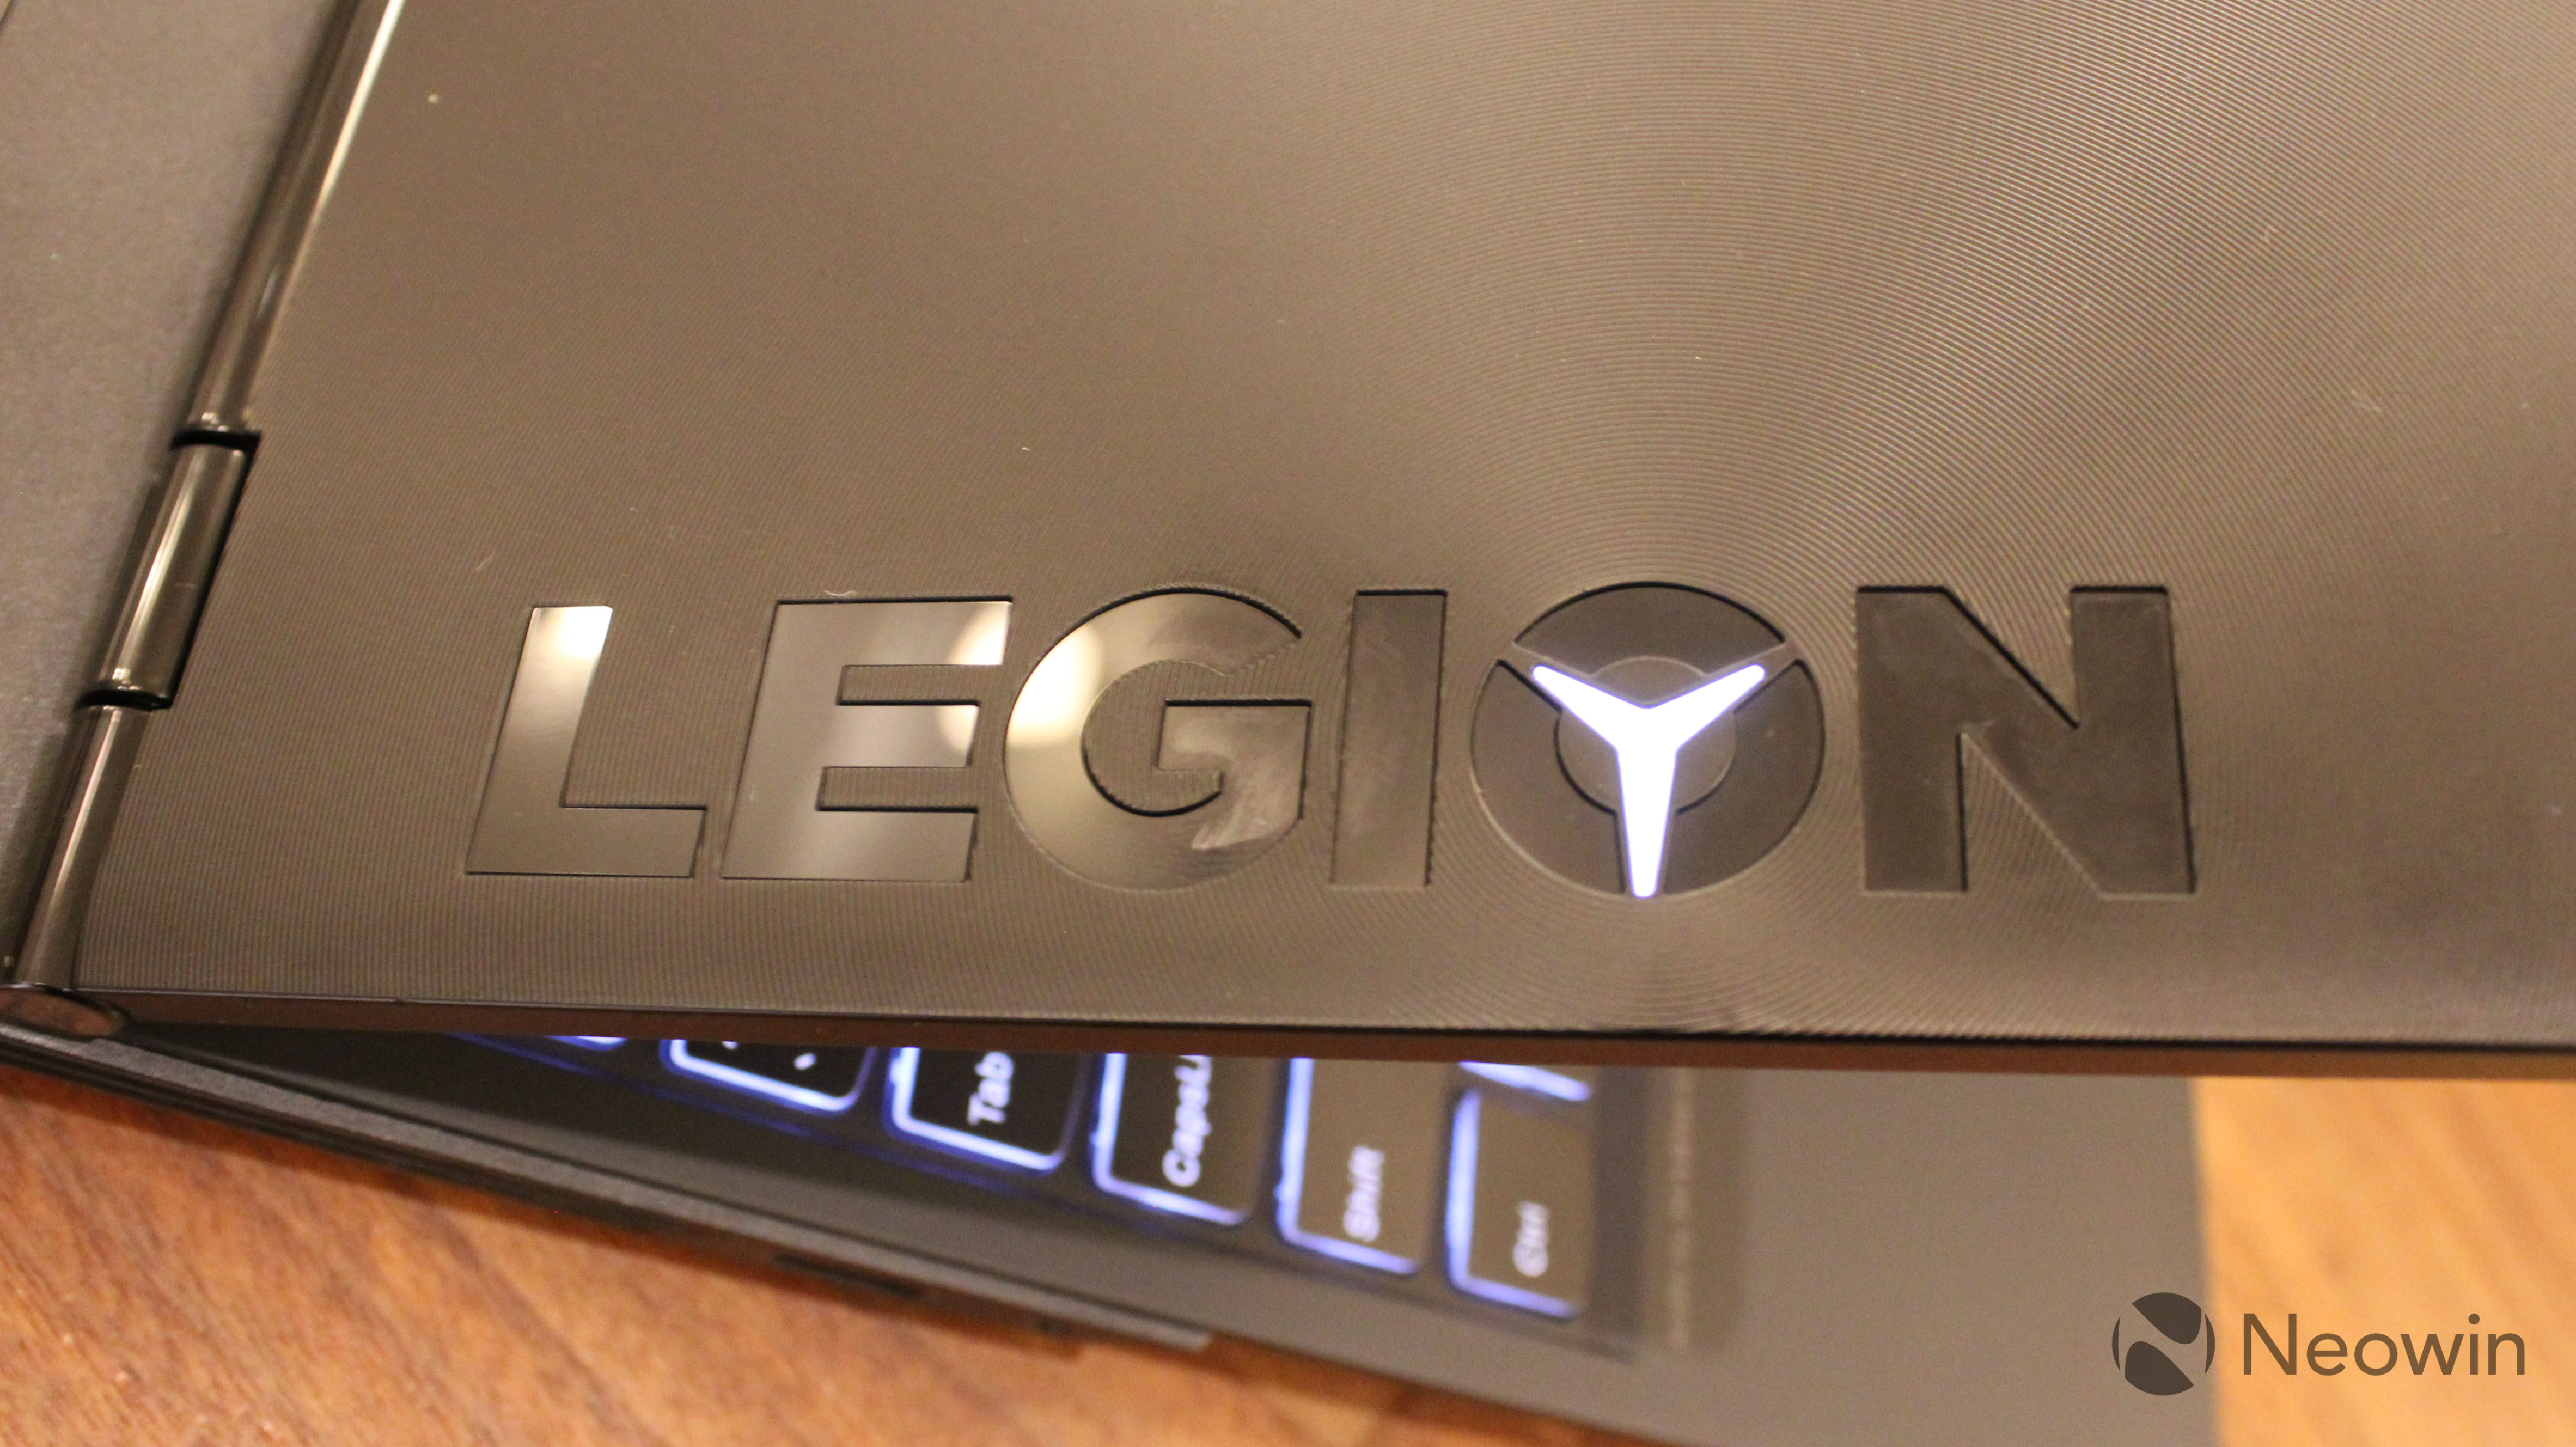 Lenovo Legion Y540 unboxing and first impressions - Neowin